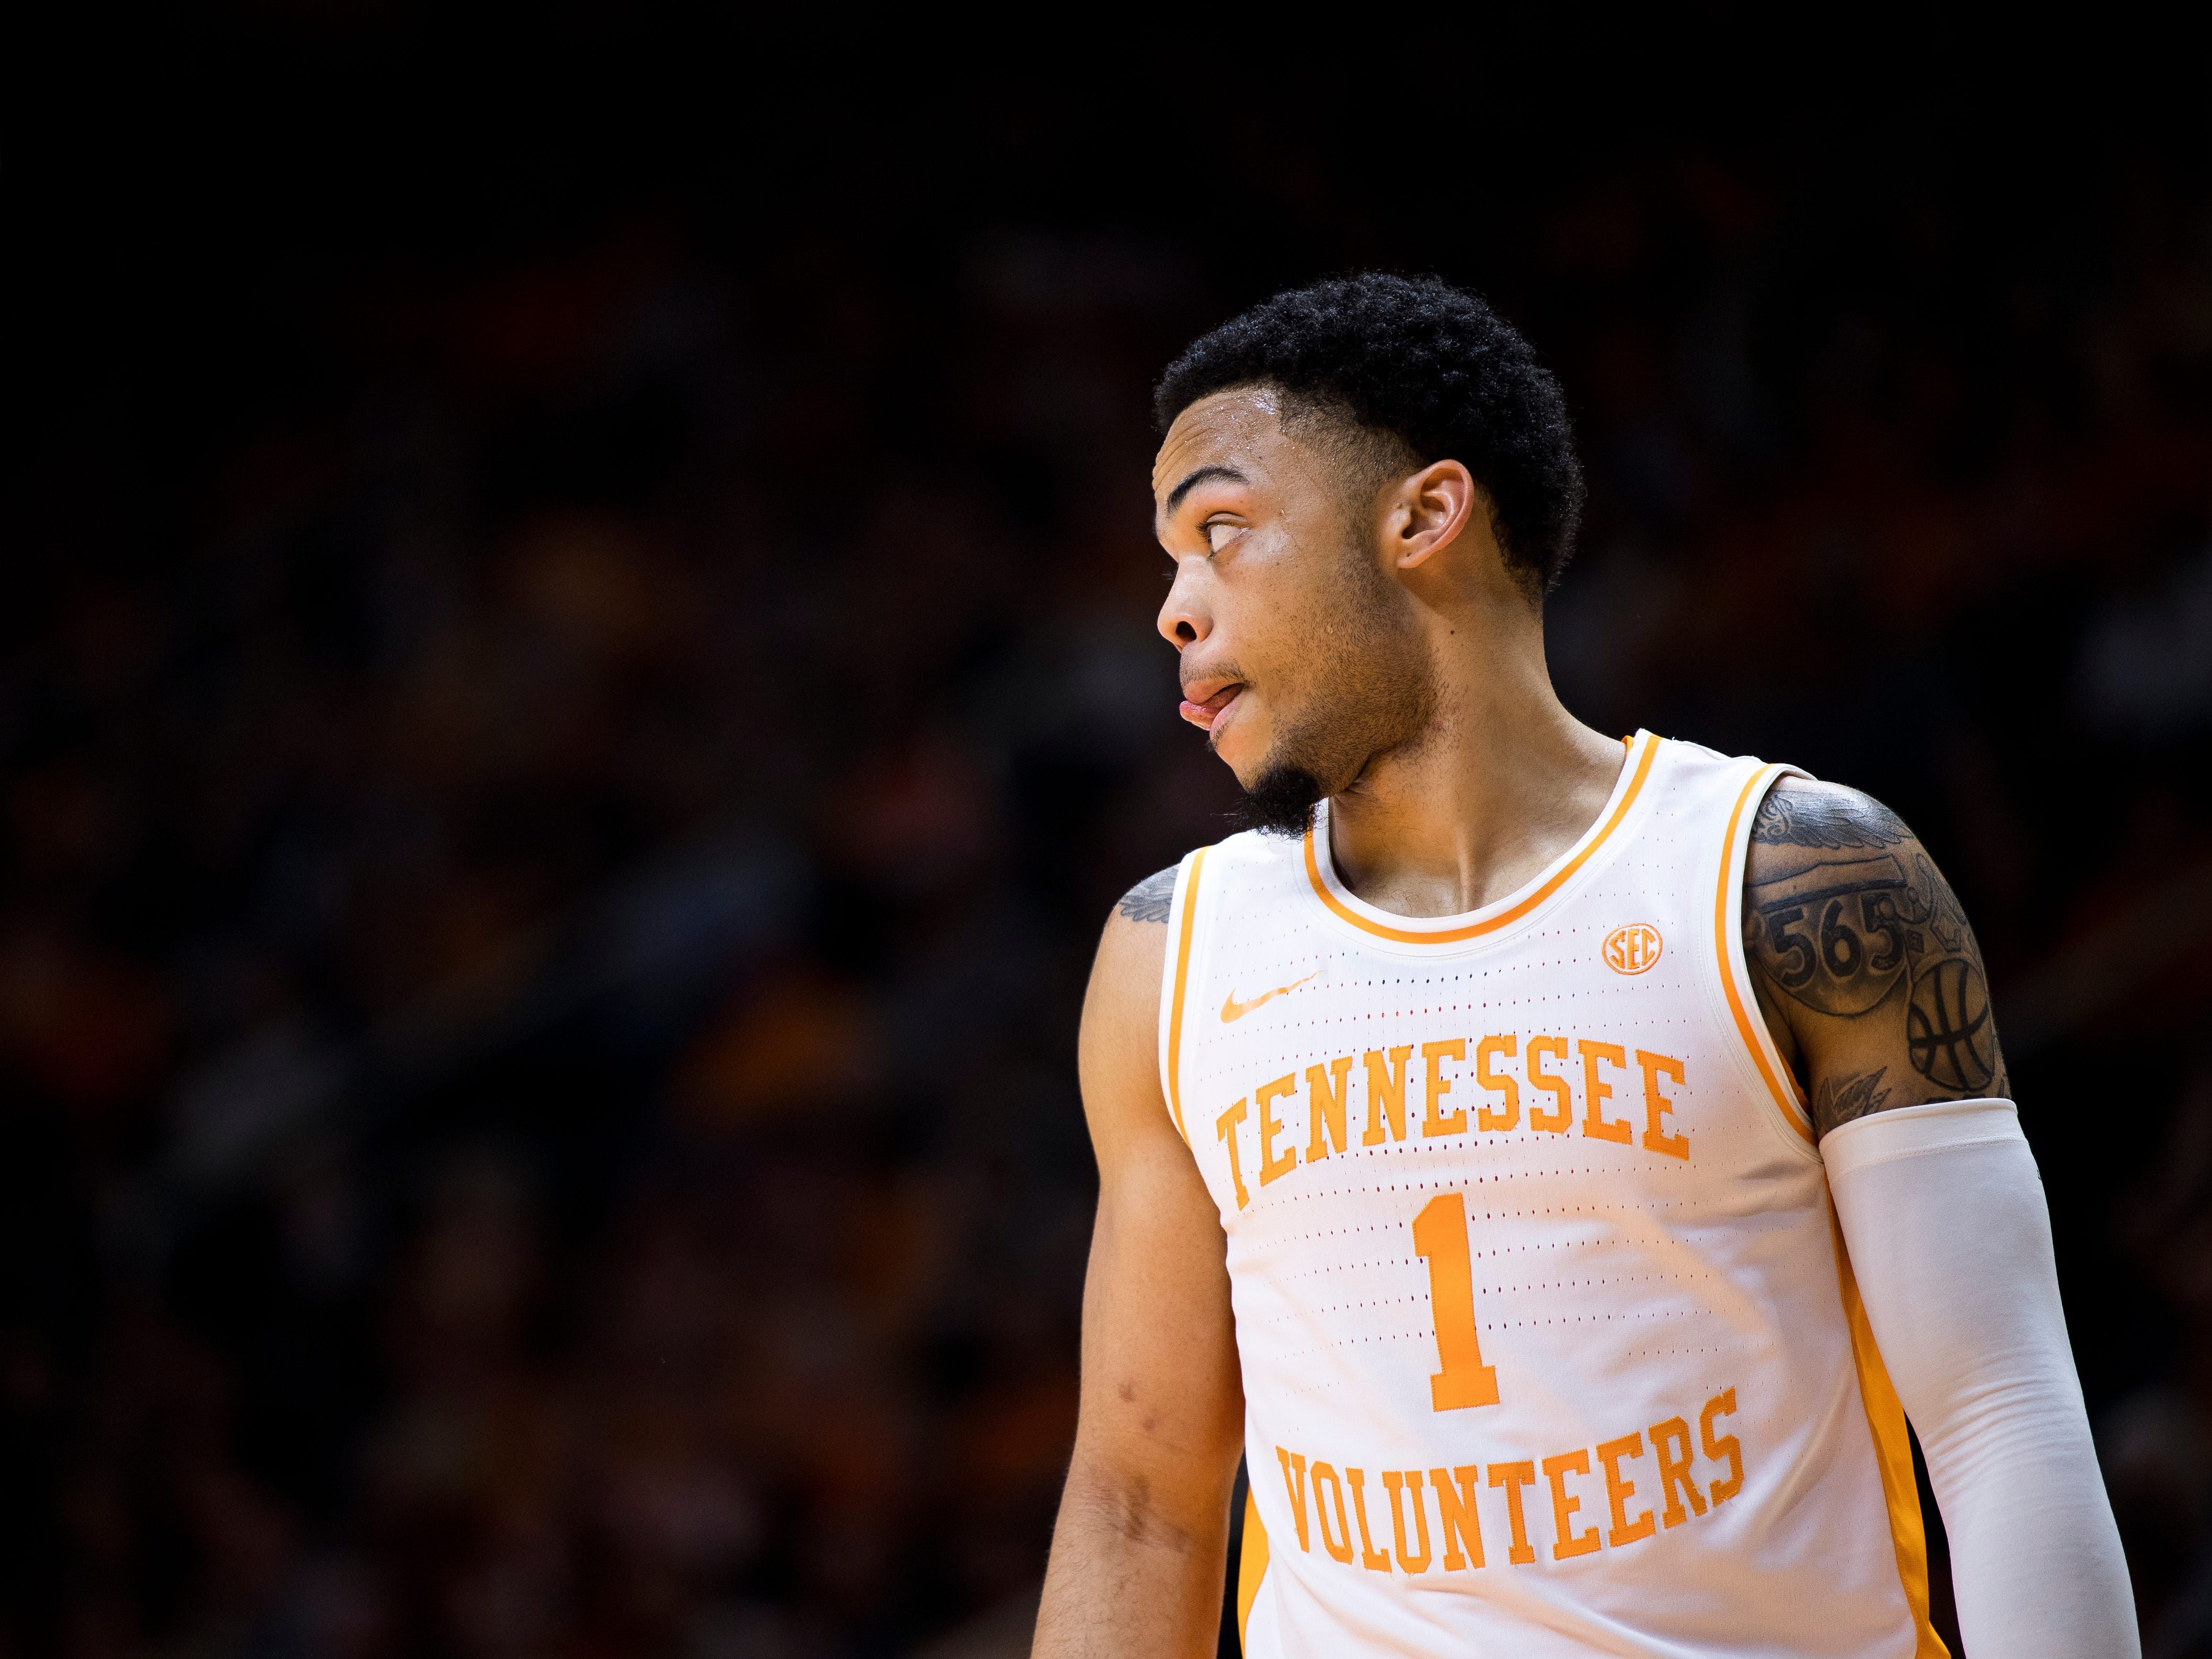 Tennessee guard Lamonte Turner (1) during Tennessee's home SEC game against South Carolina at Thompson-Boling Arena in Knoxville on Wednesday, February 13, 2019.